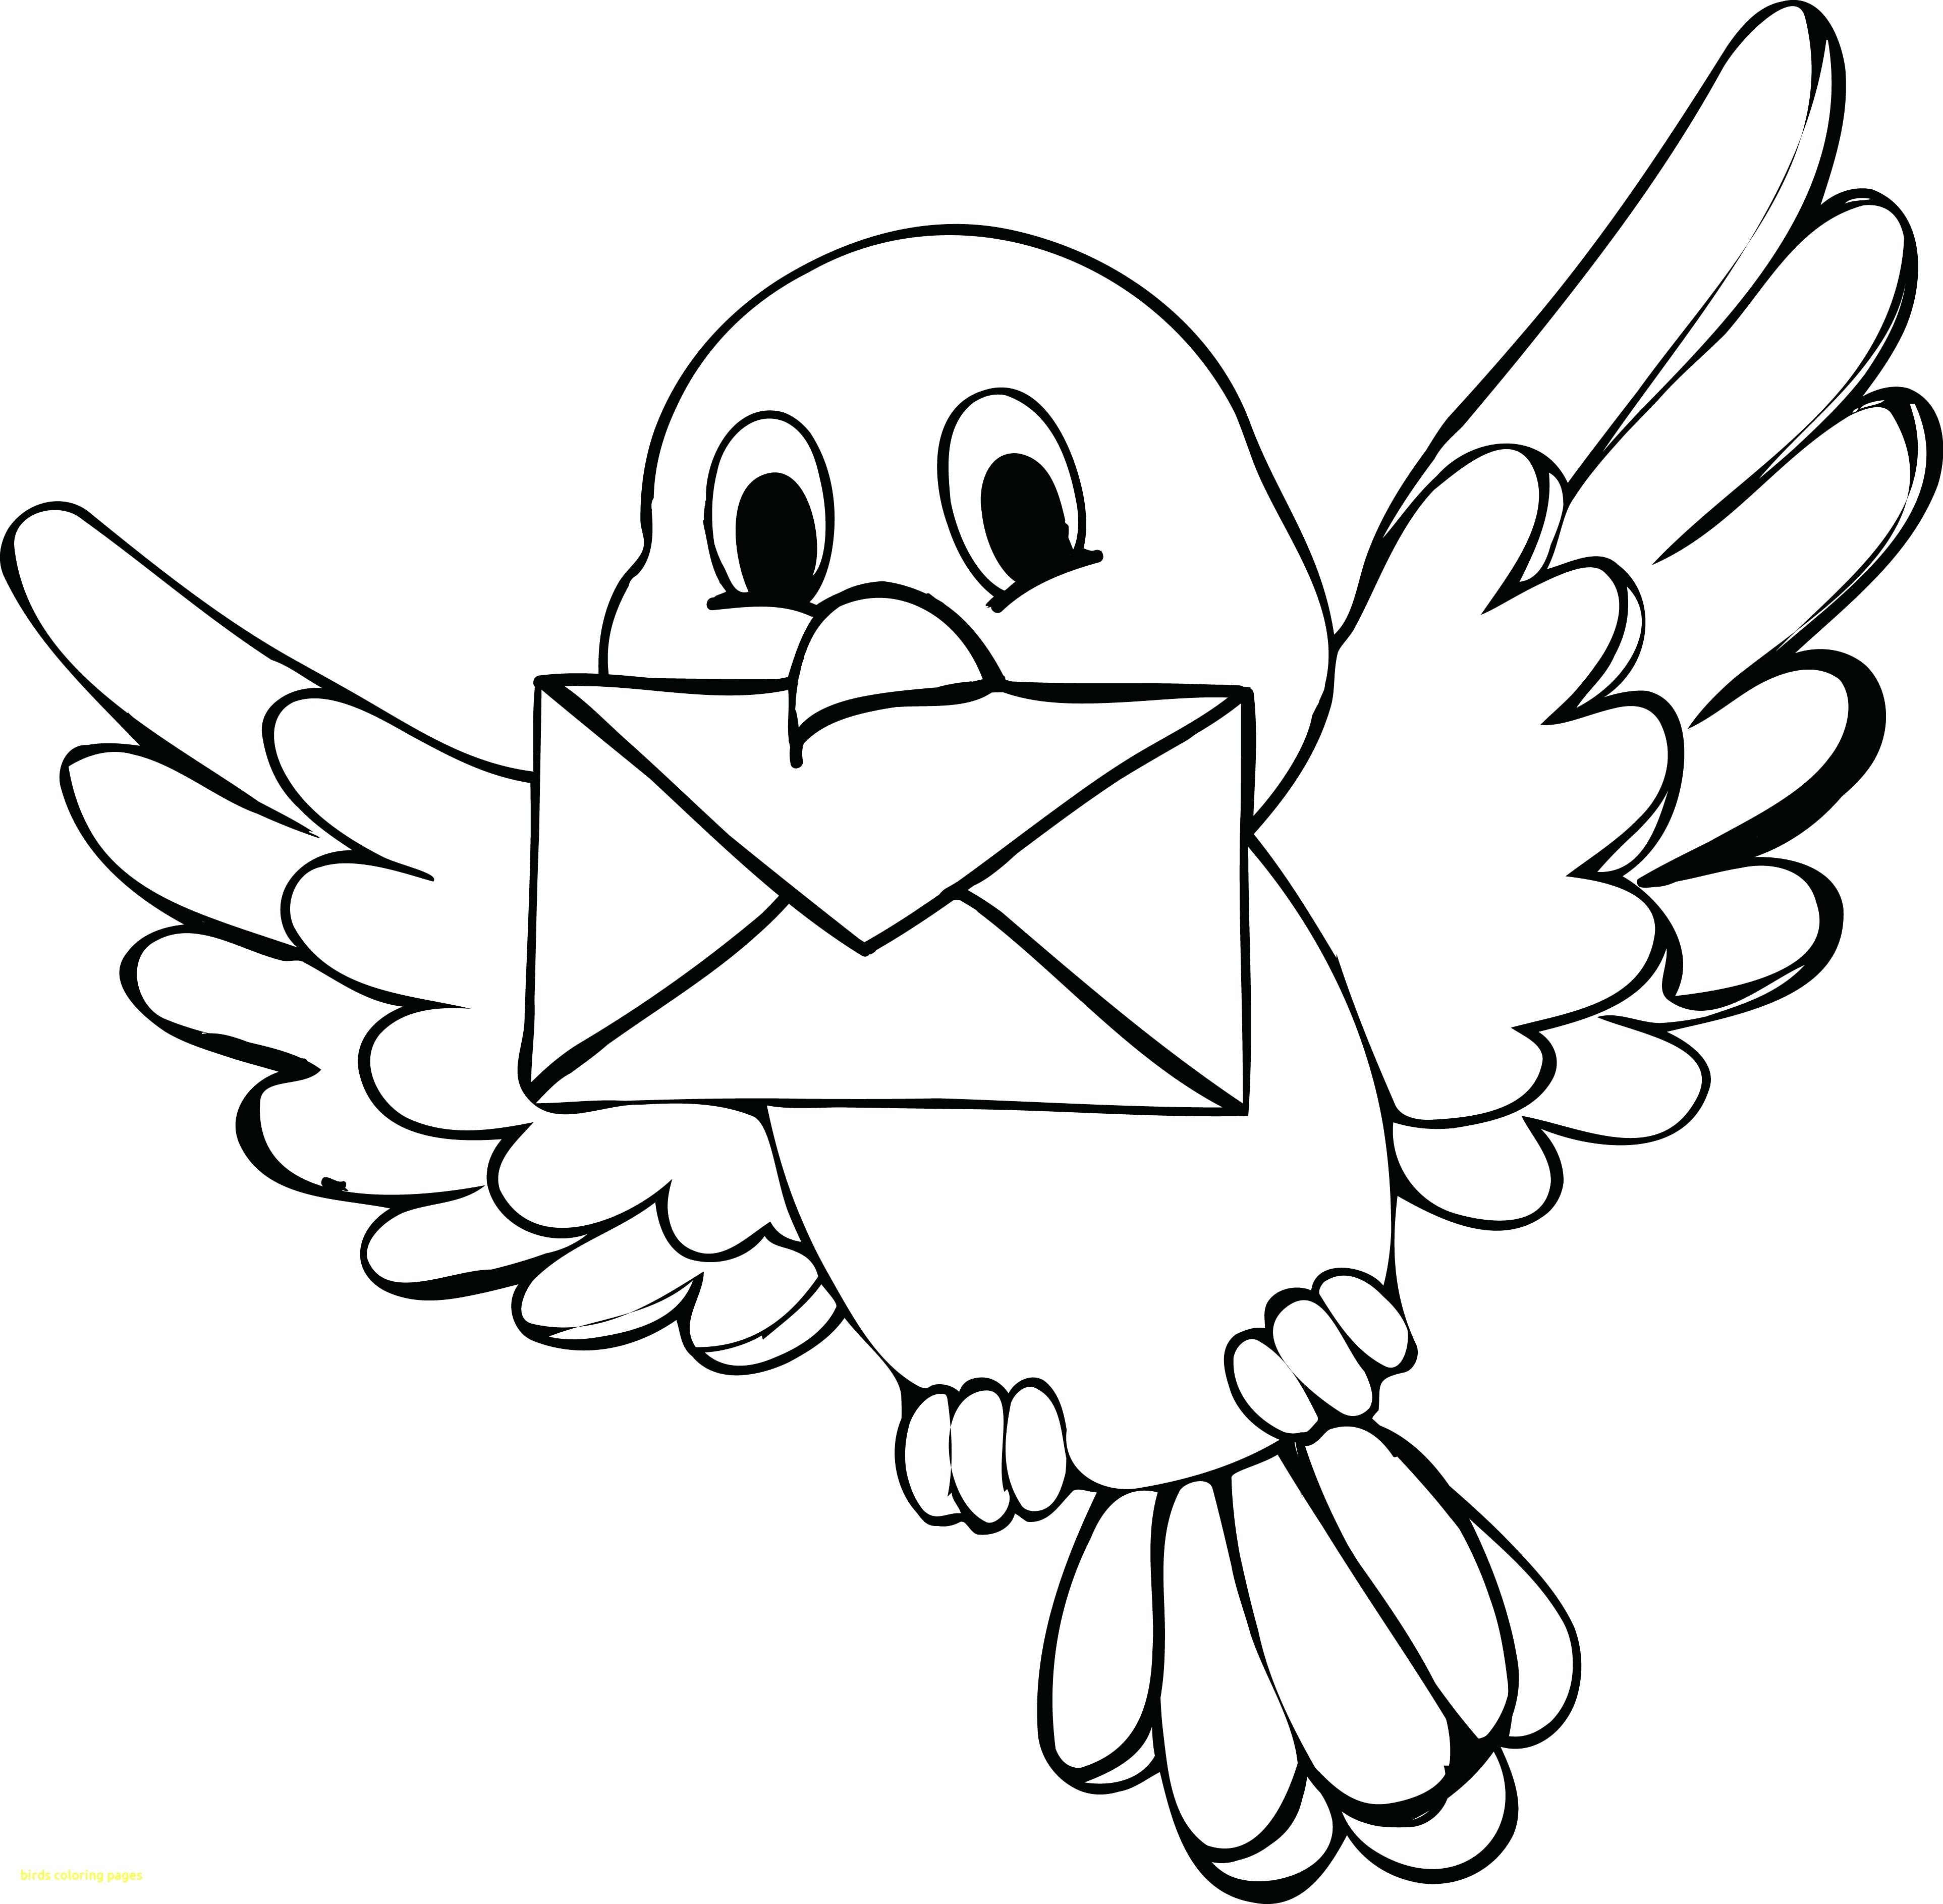 3851x3773 Coloring Pages Birds Flying New Coloring Coloring Page Birds Cute